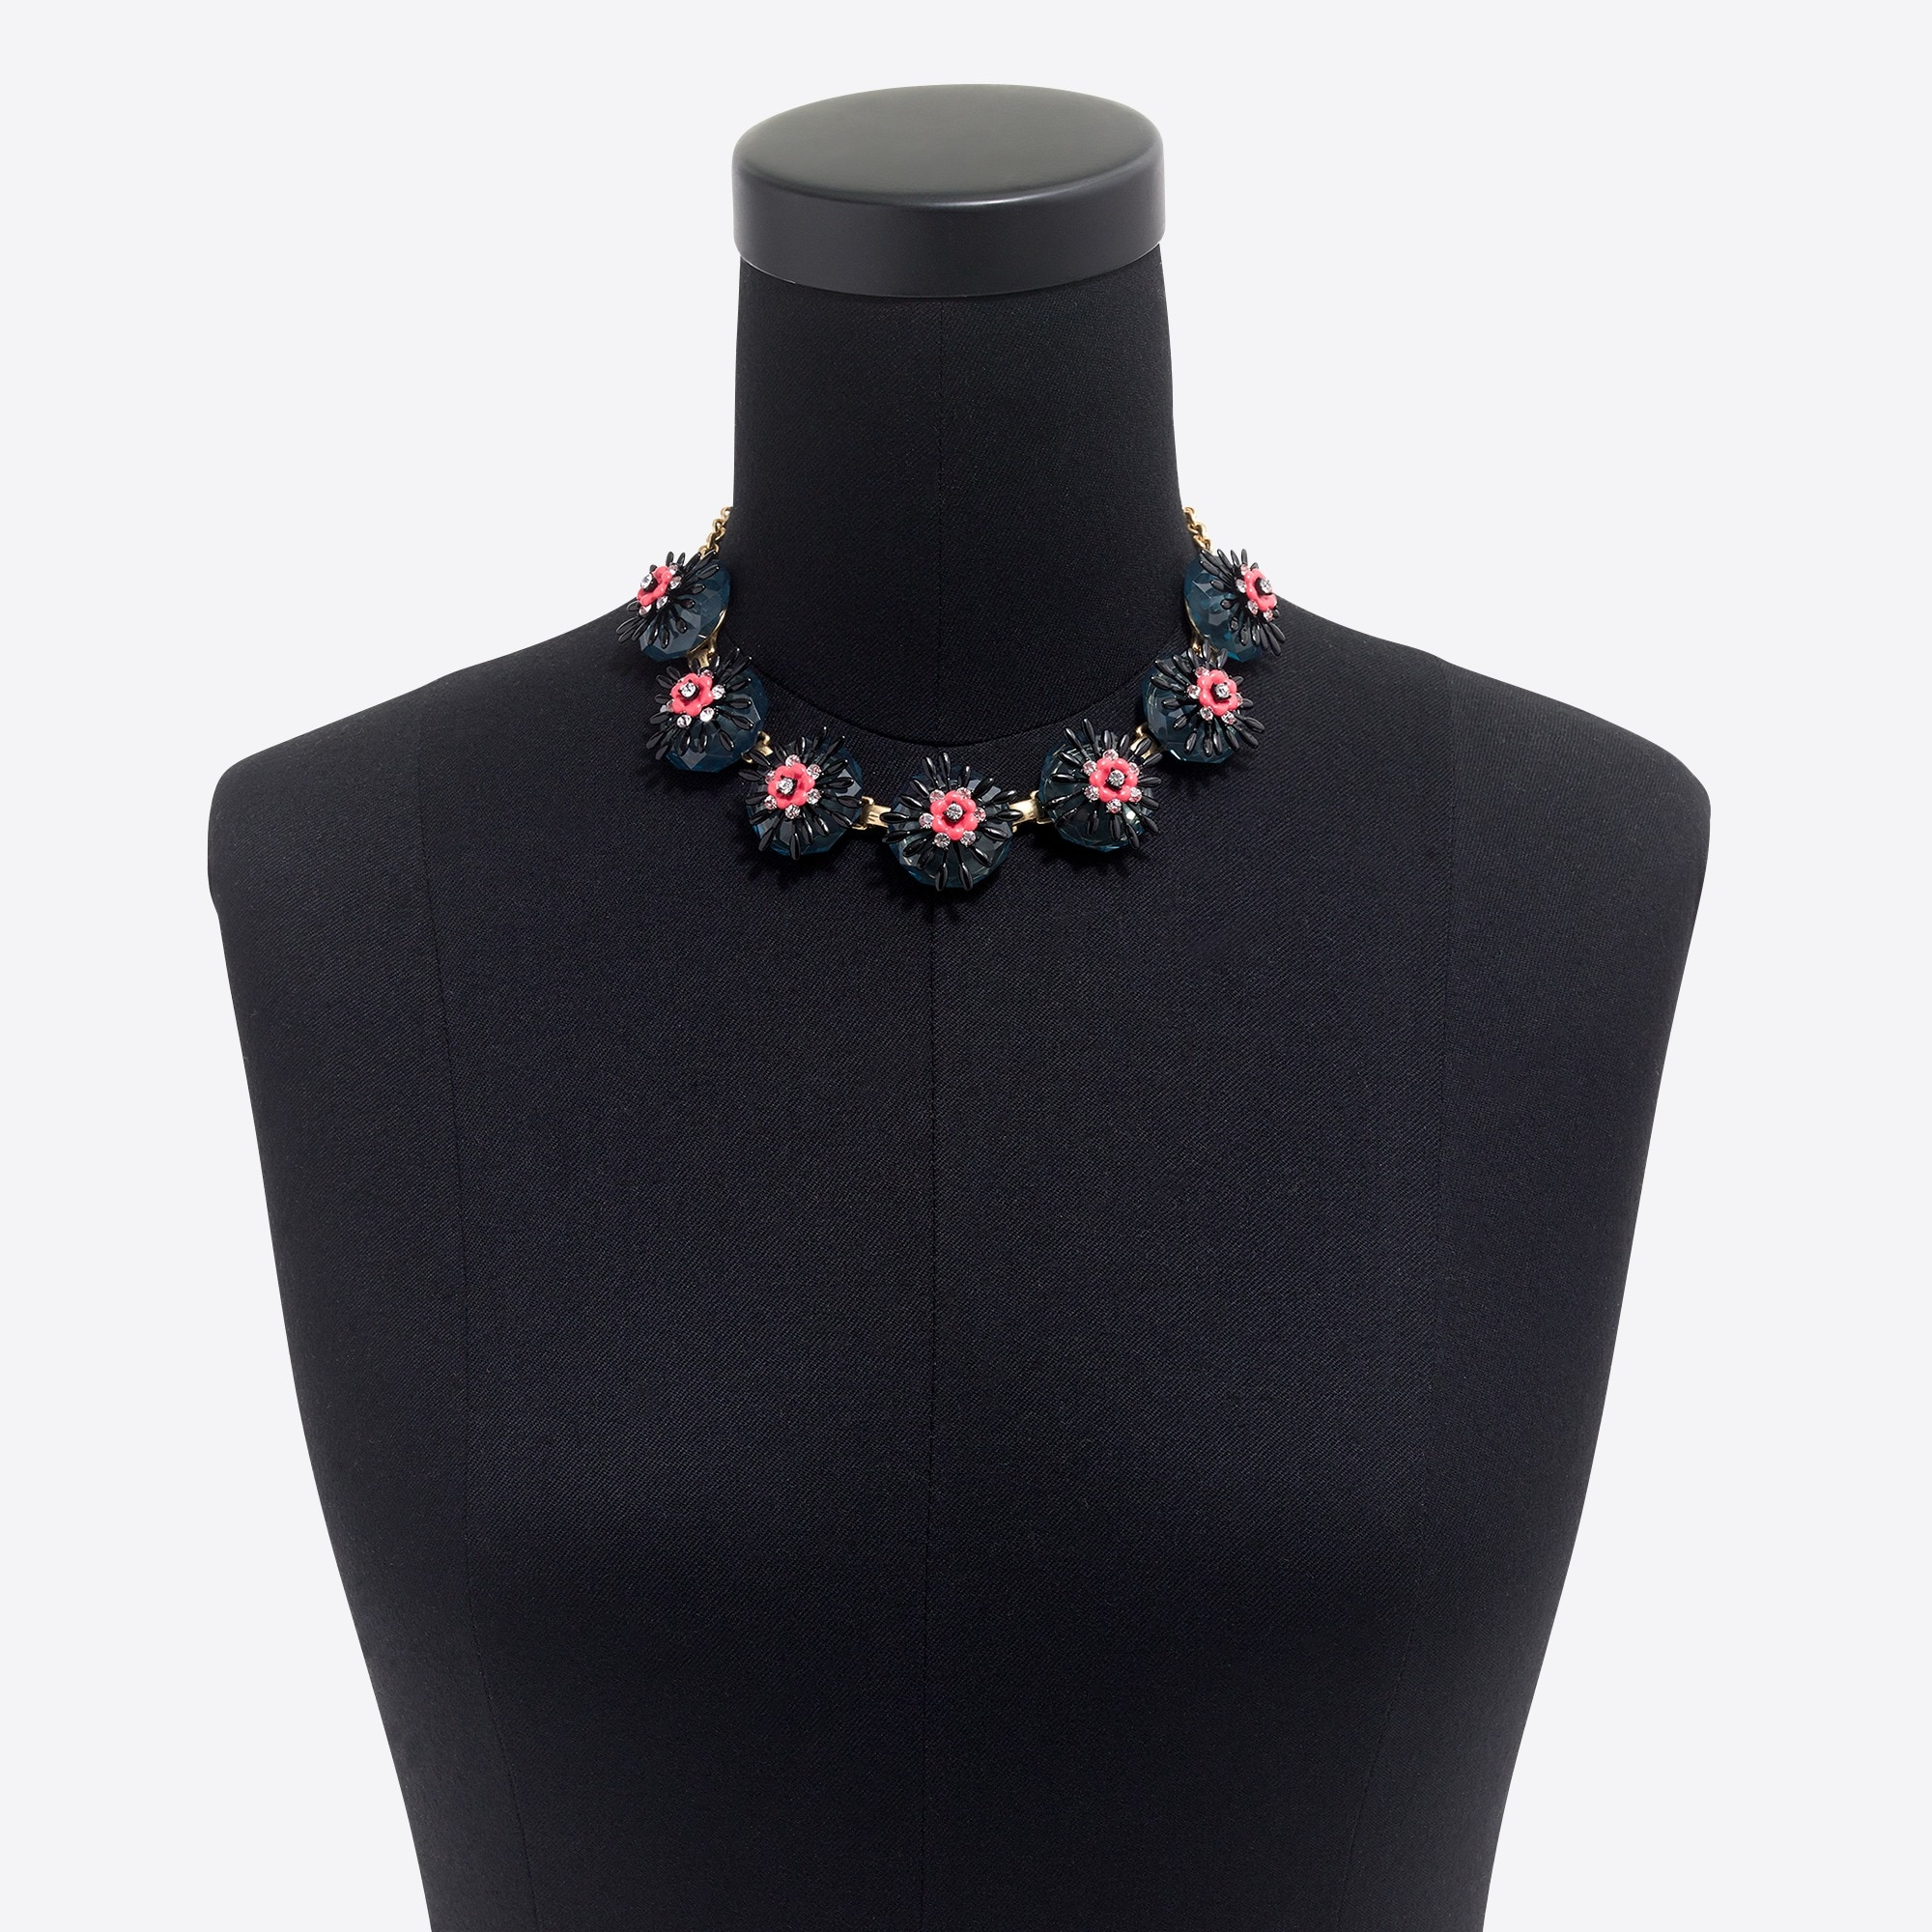 Image 2 for Sweet flower statement necklace